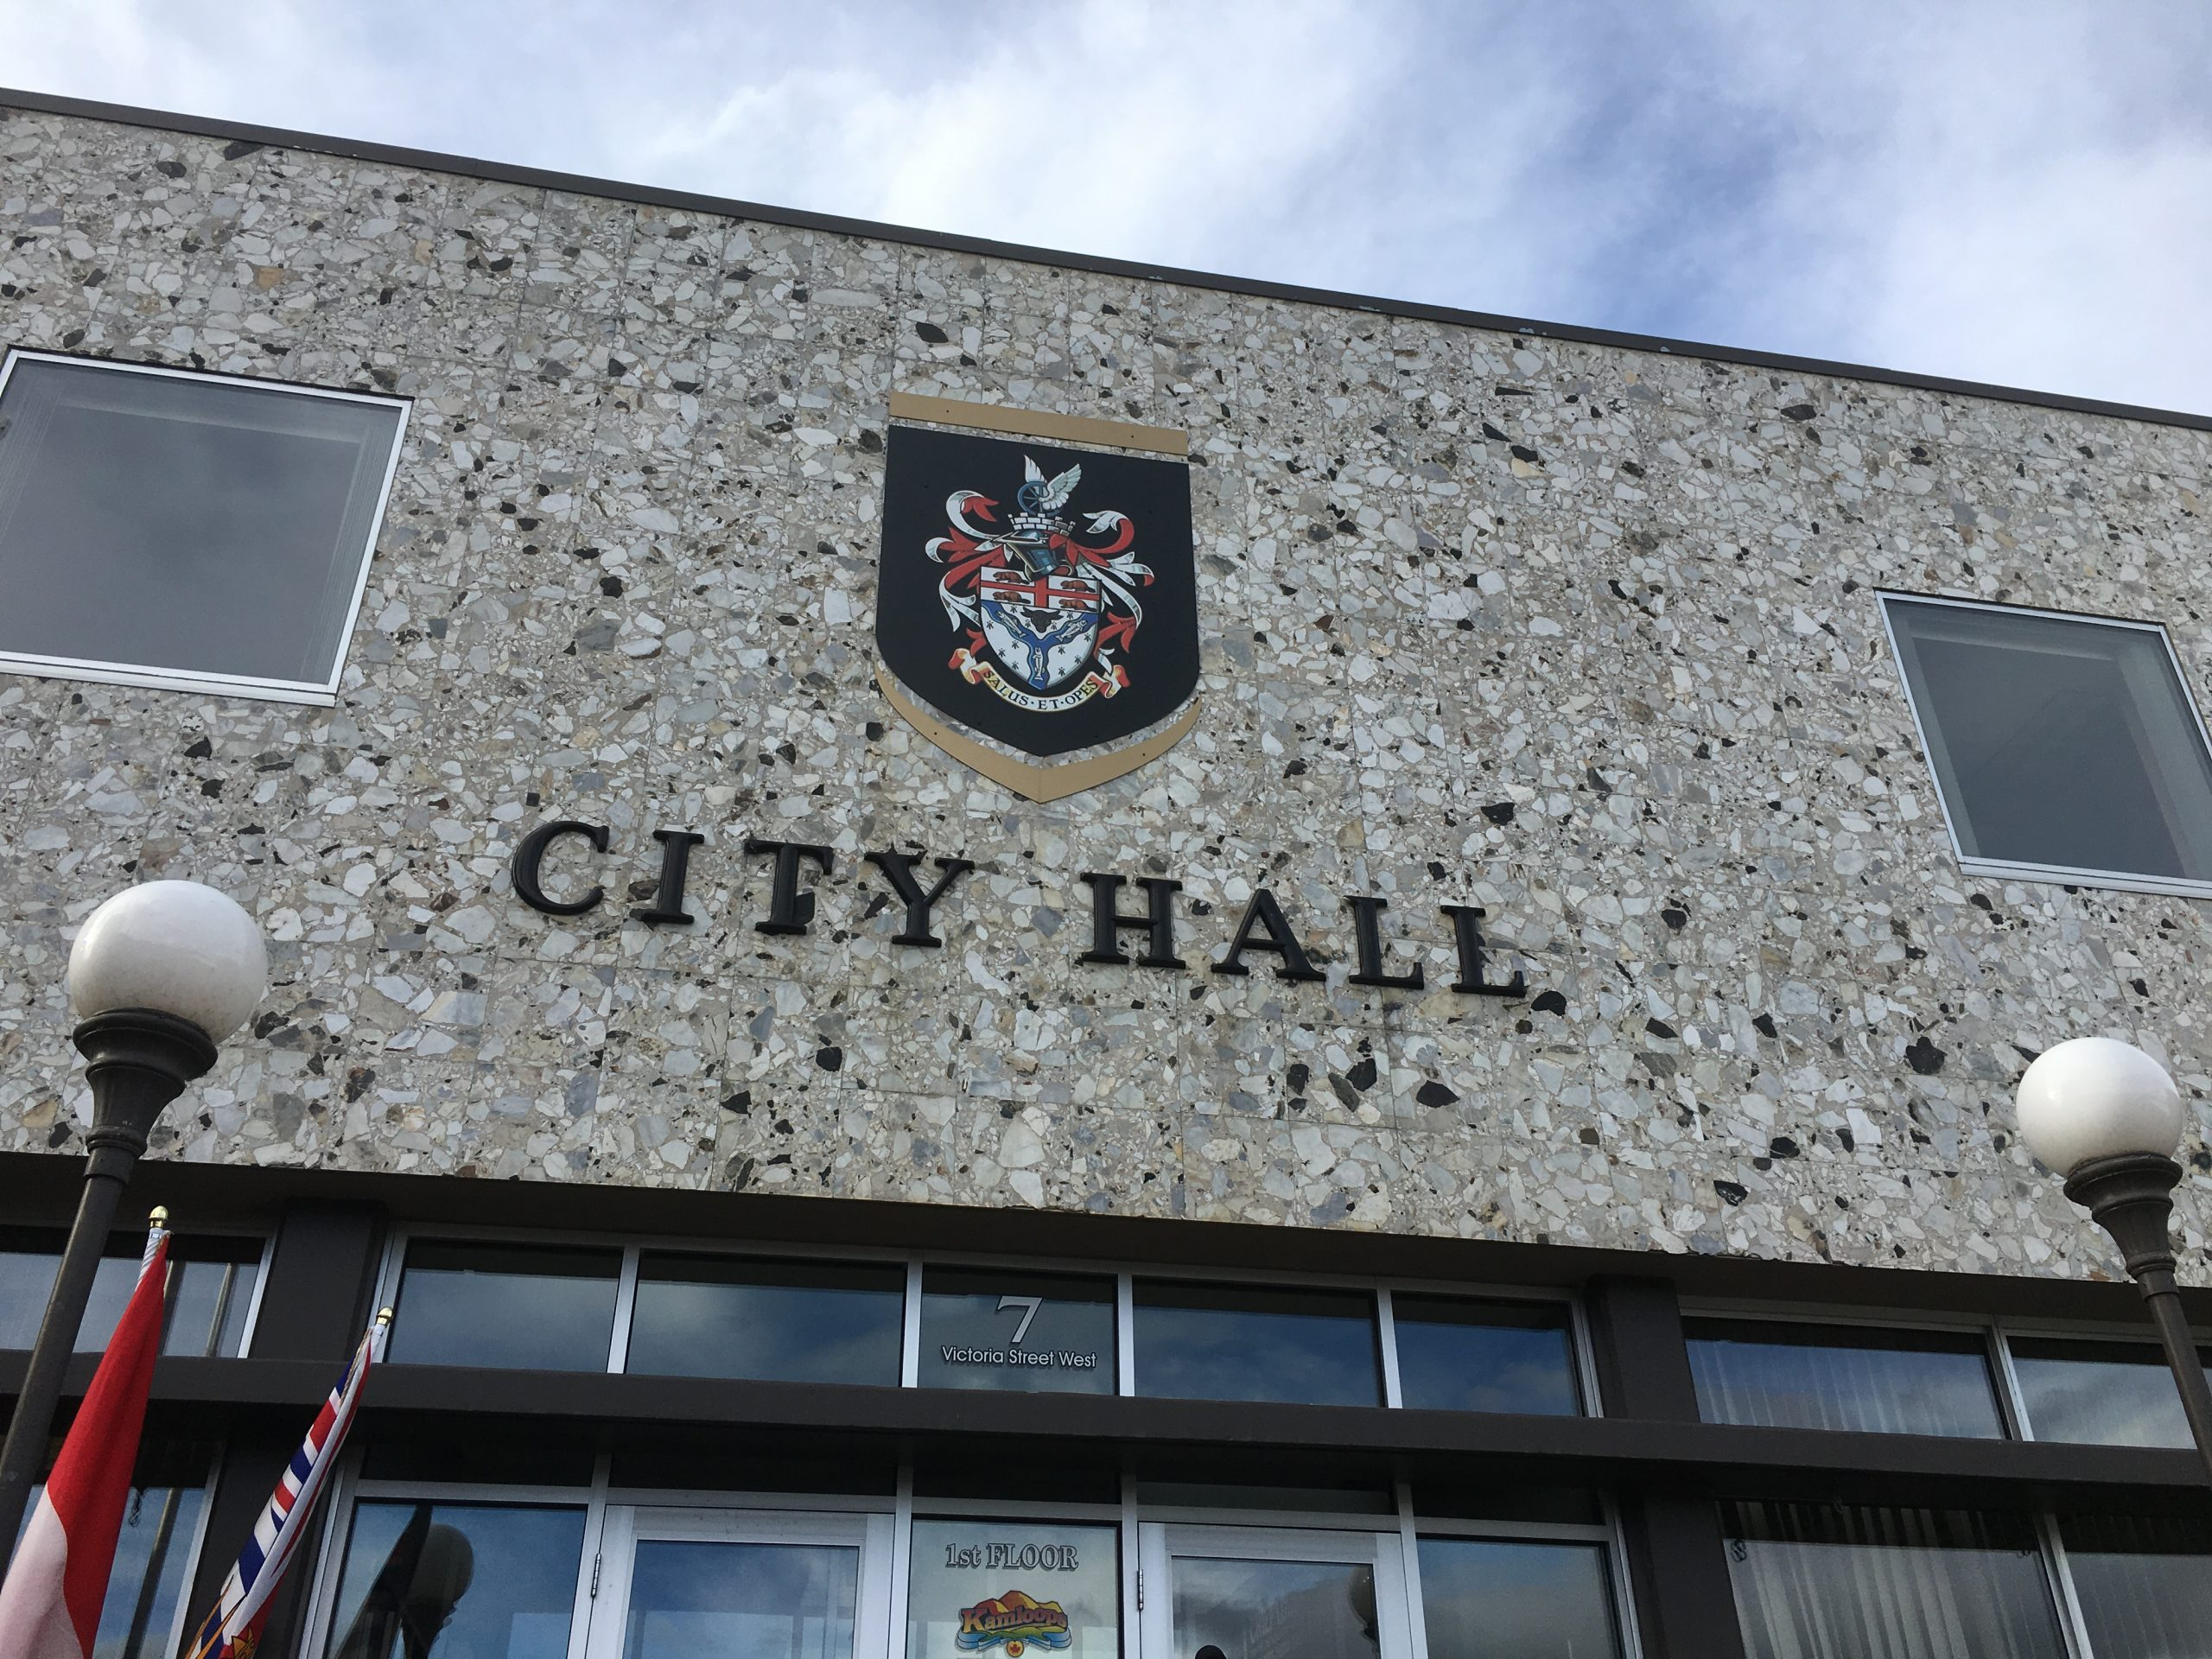 No change in verdict from Kamloops Council after rejecting rezoning application from Culos Developments